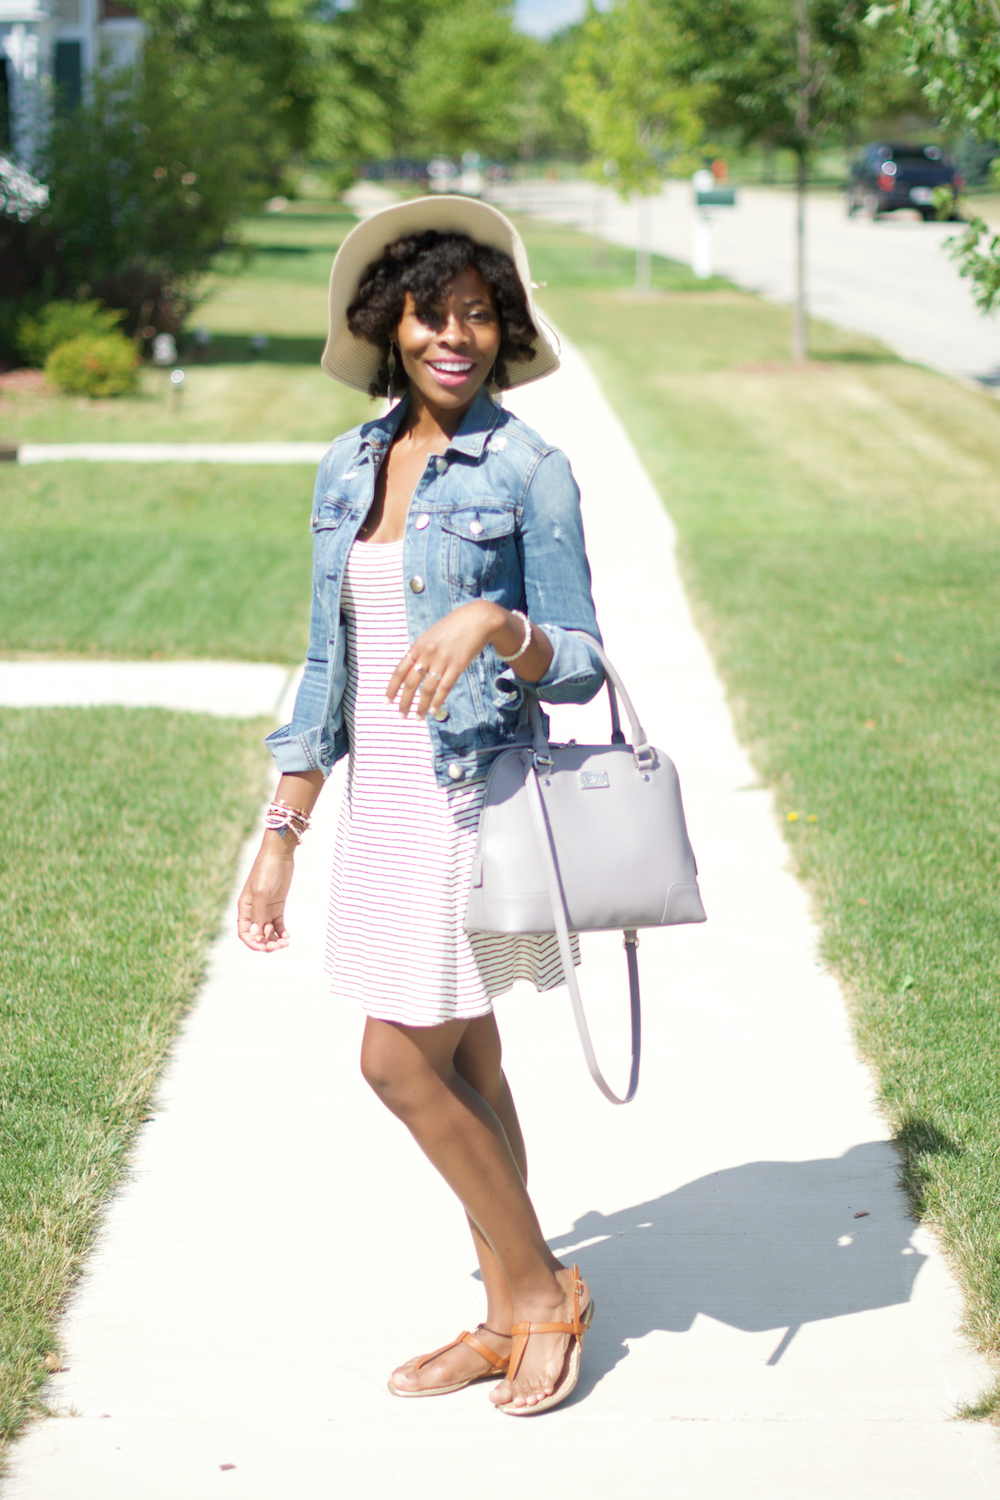 amber-shannon-fashion-blogger-chicago-7-18-16